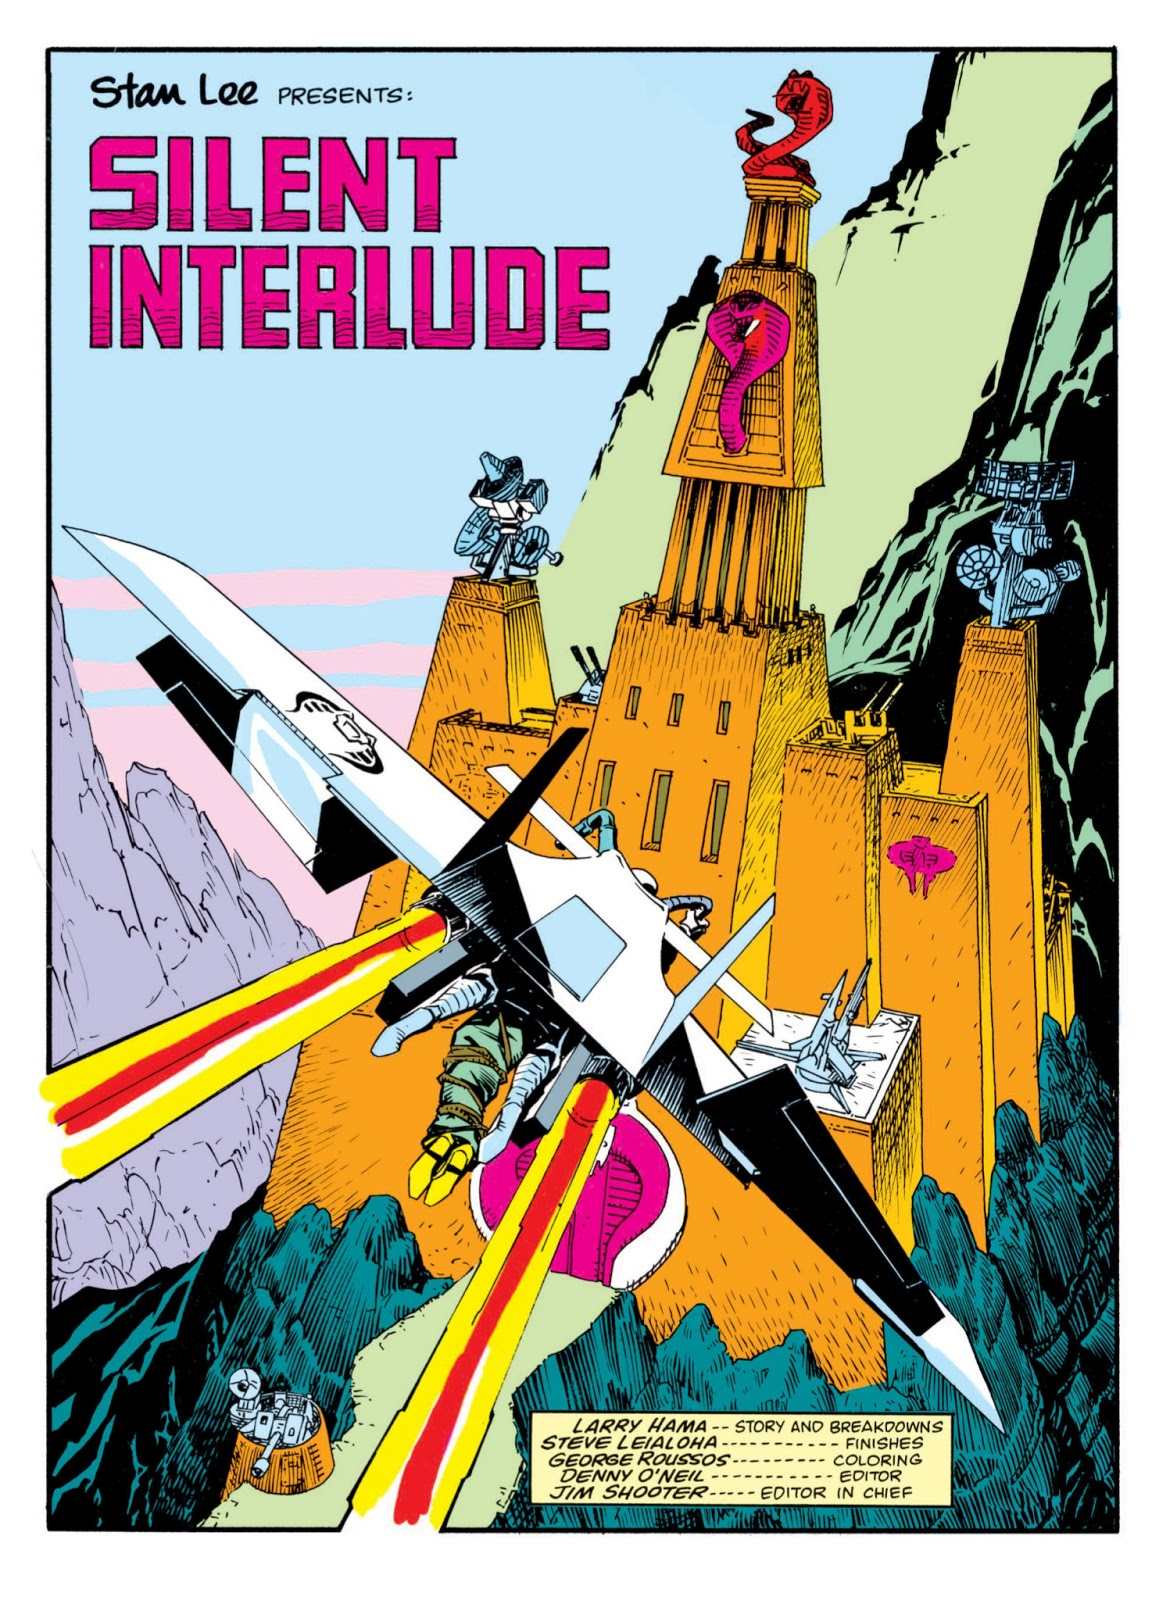 However The Most Unusual COMIC BOOK Story Ever Is Easily First Issue That Gets Mentioned When I Talk To Anyone About Marvels GI Joe Comic Series